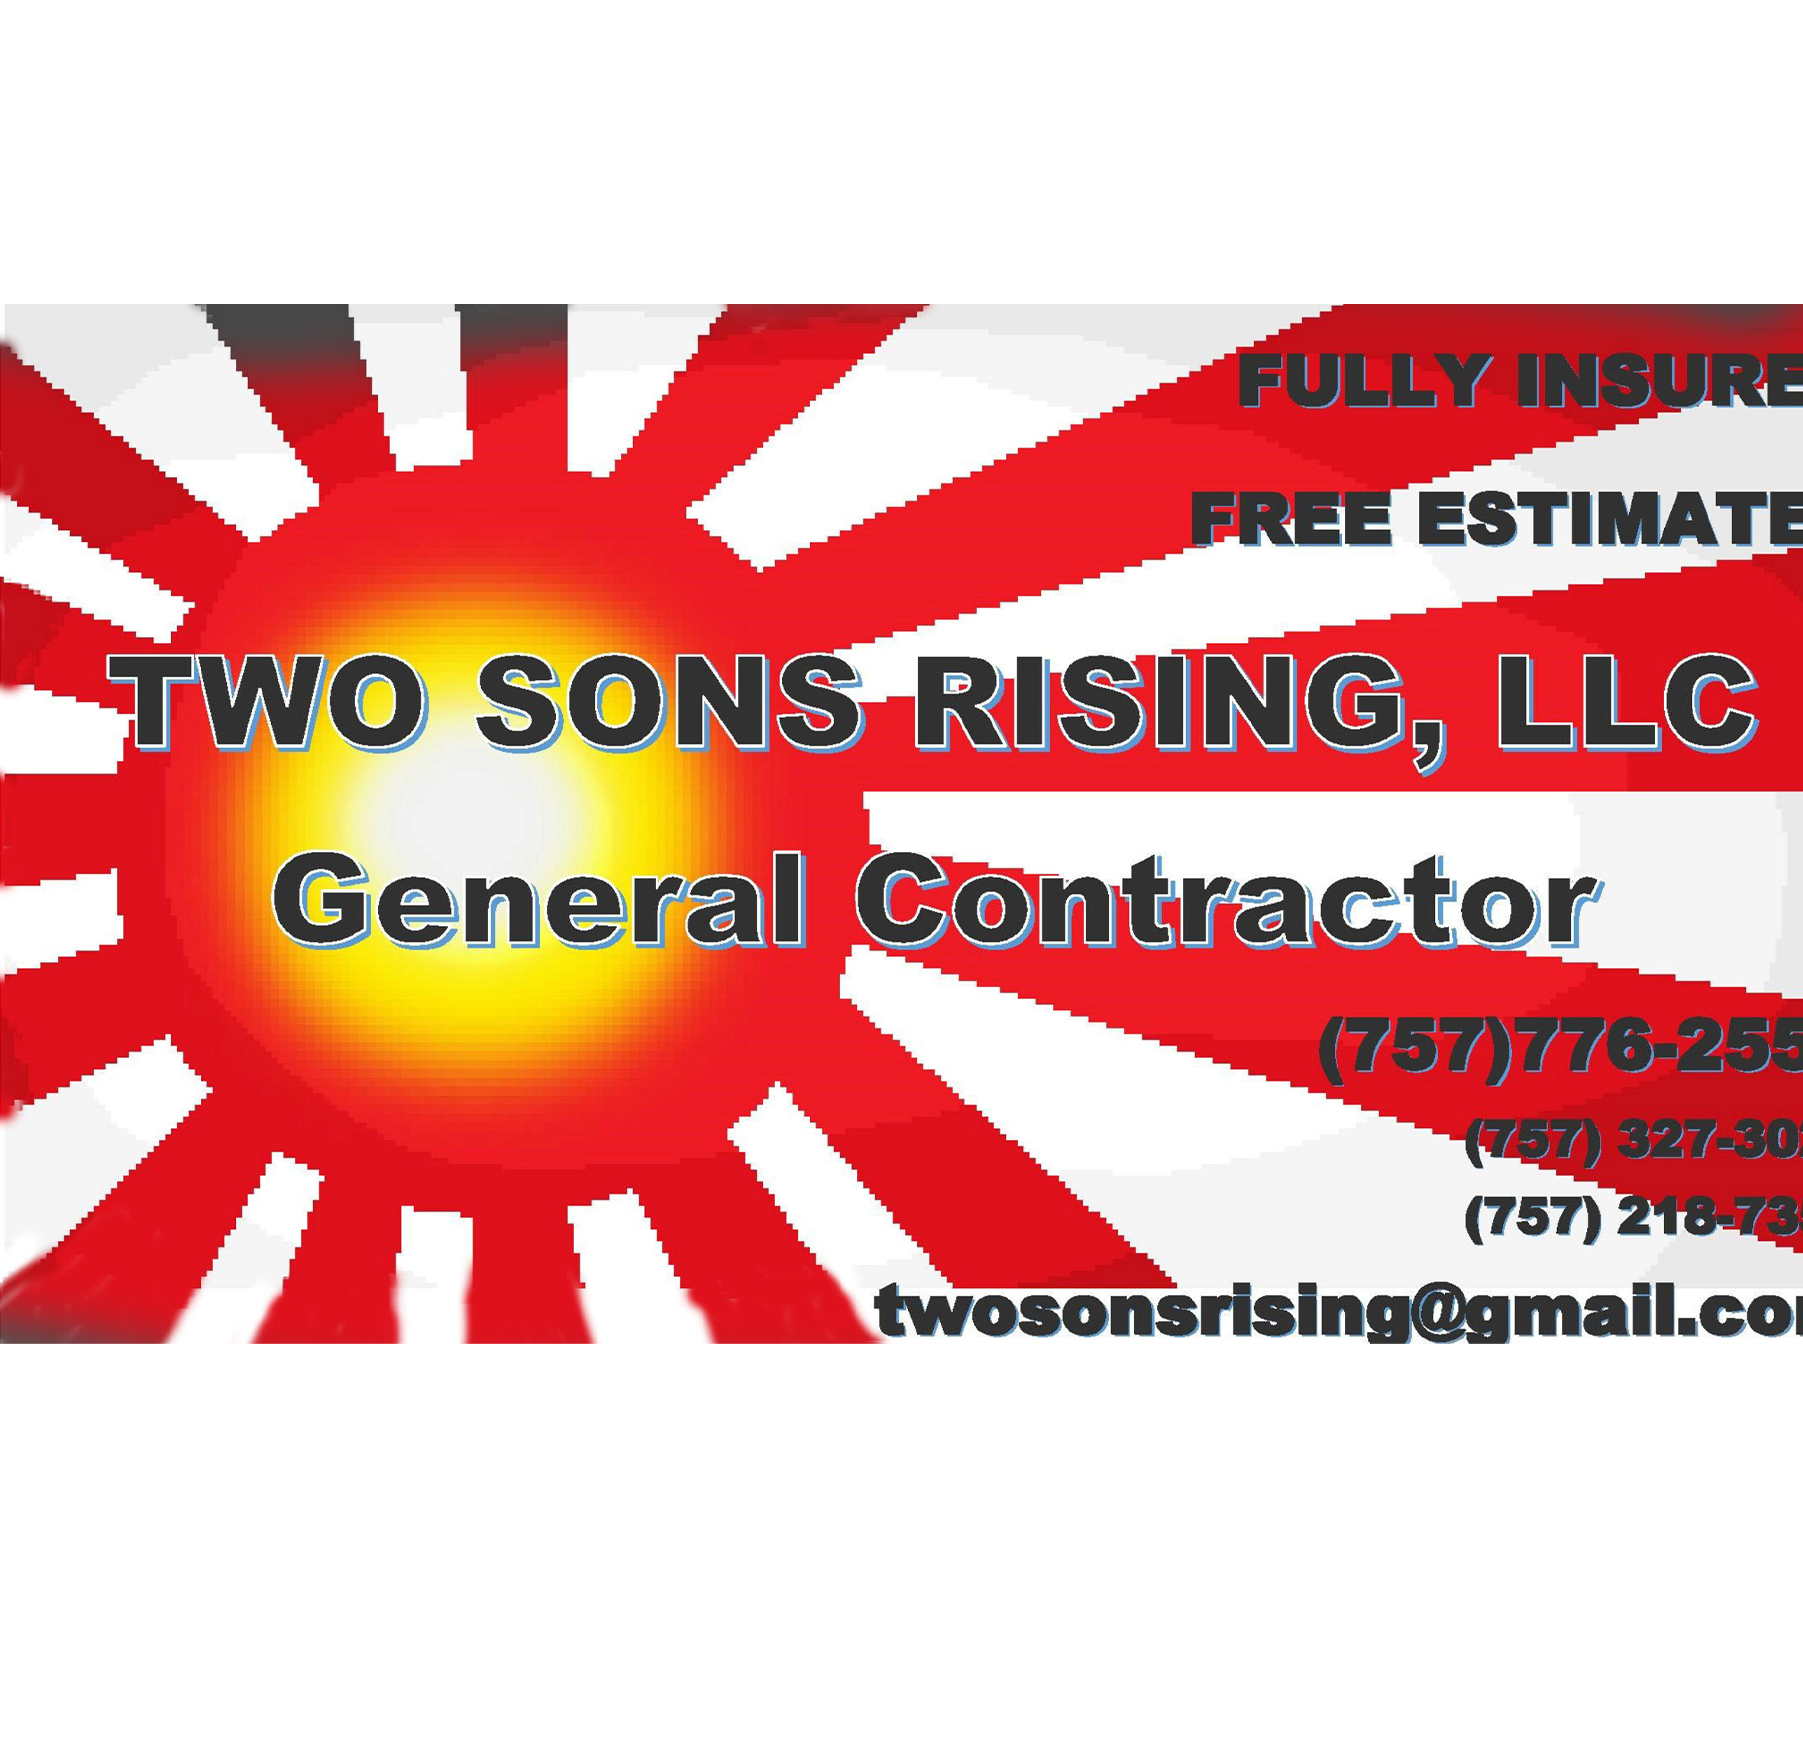 Two Sons Rising